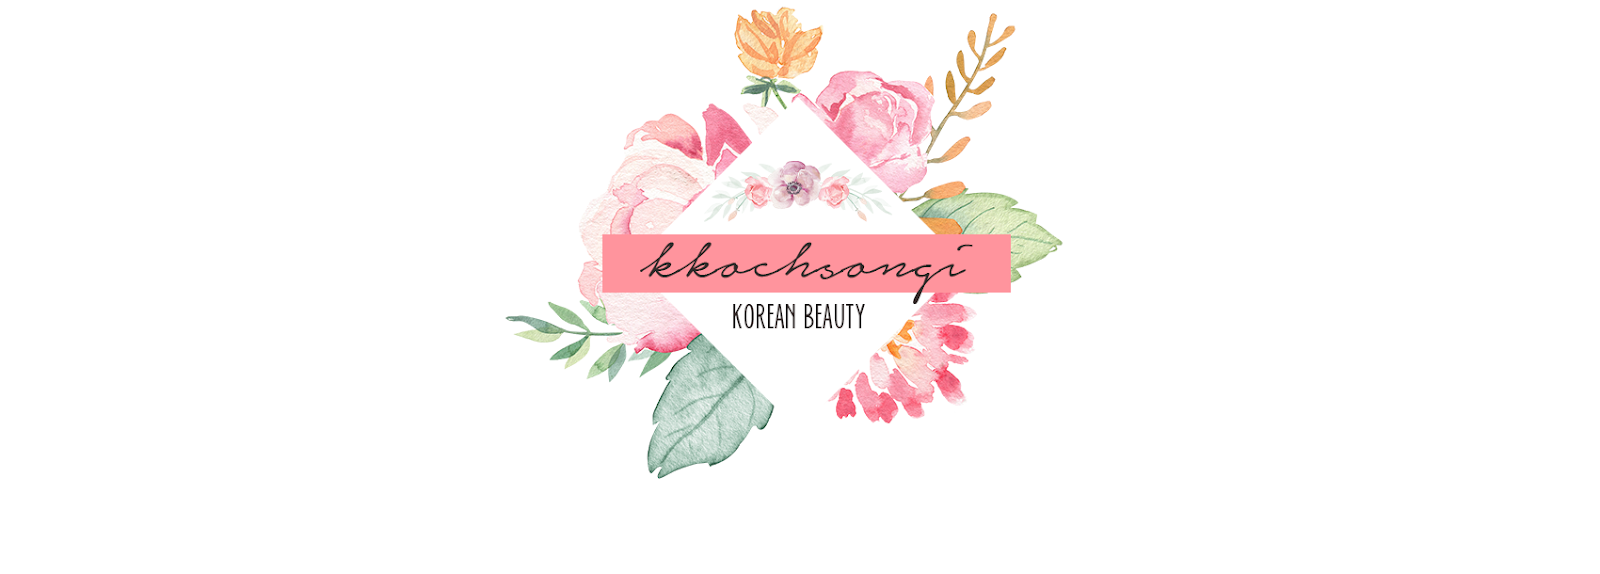 k k o c h s o n g i // korean beauty blog